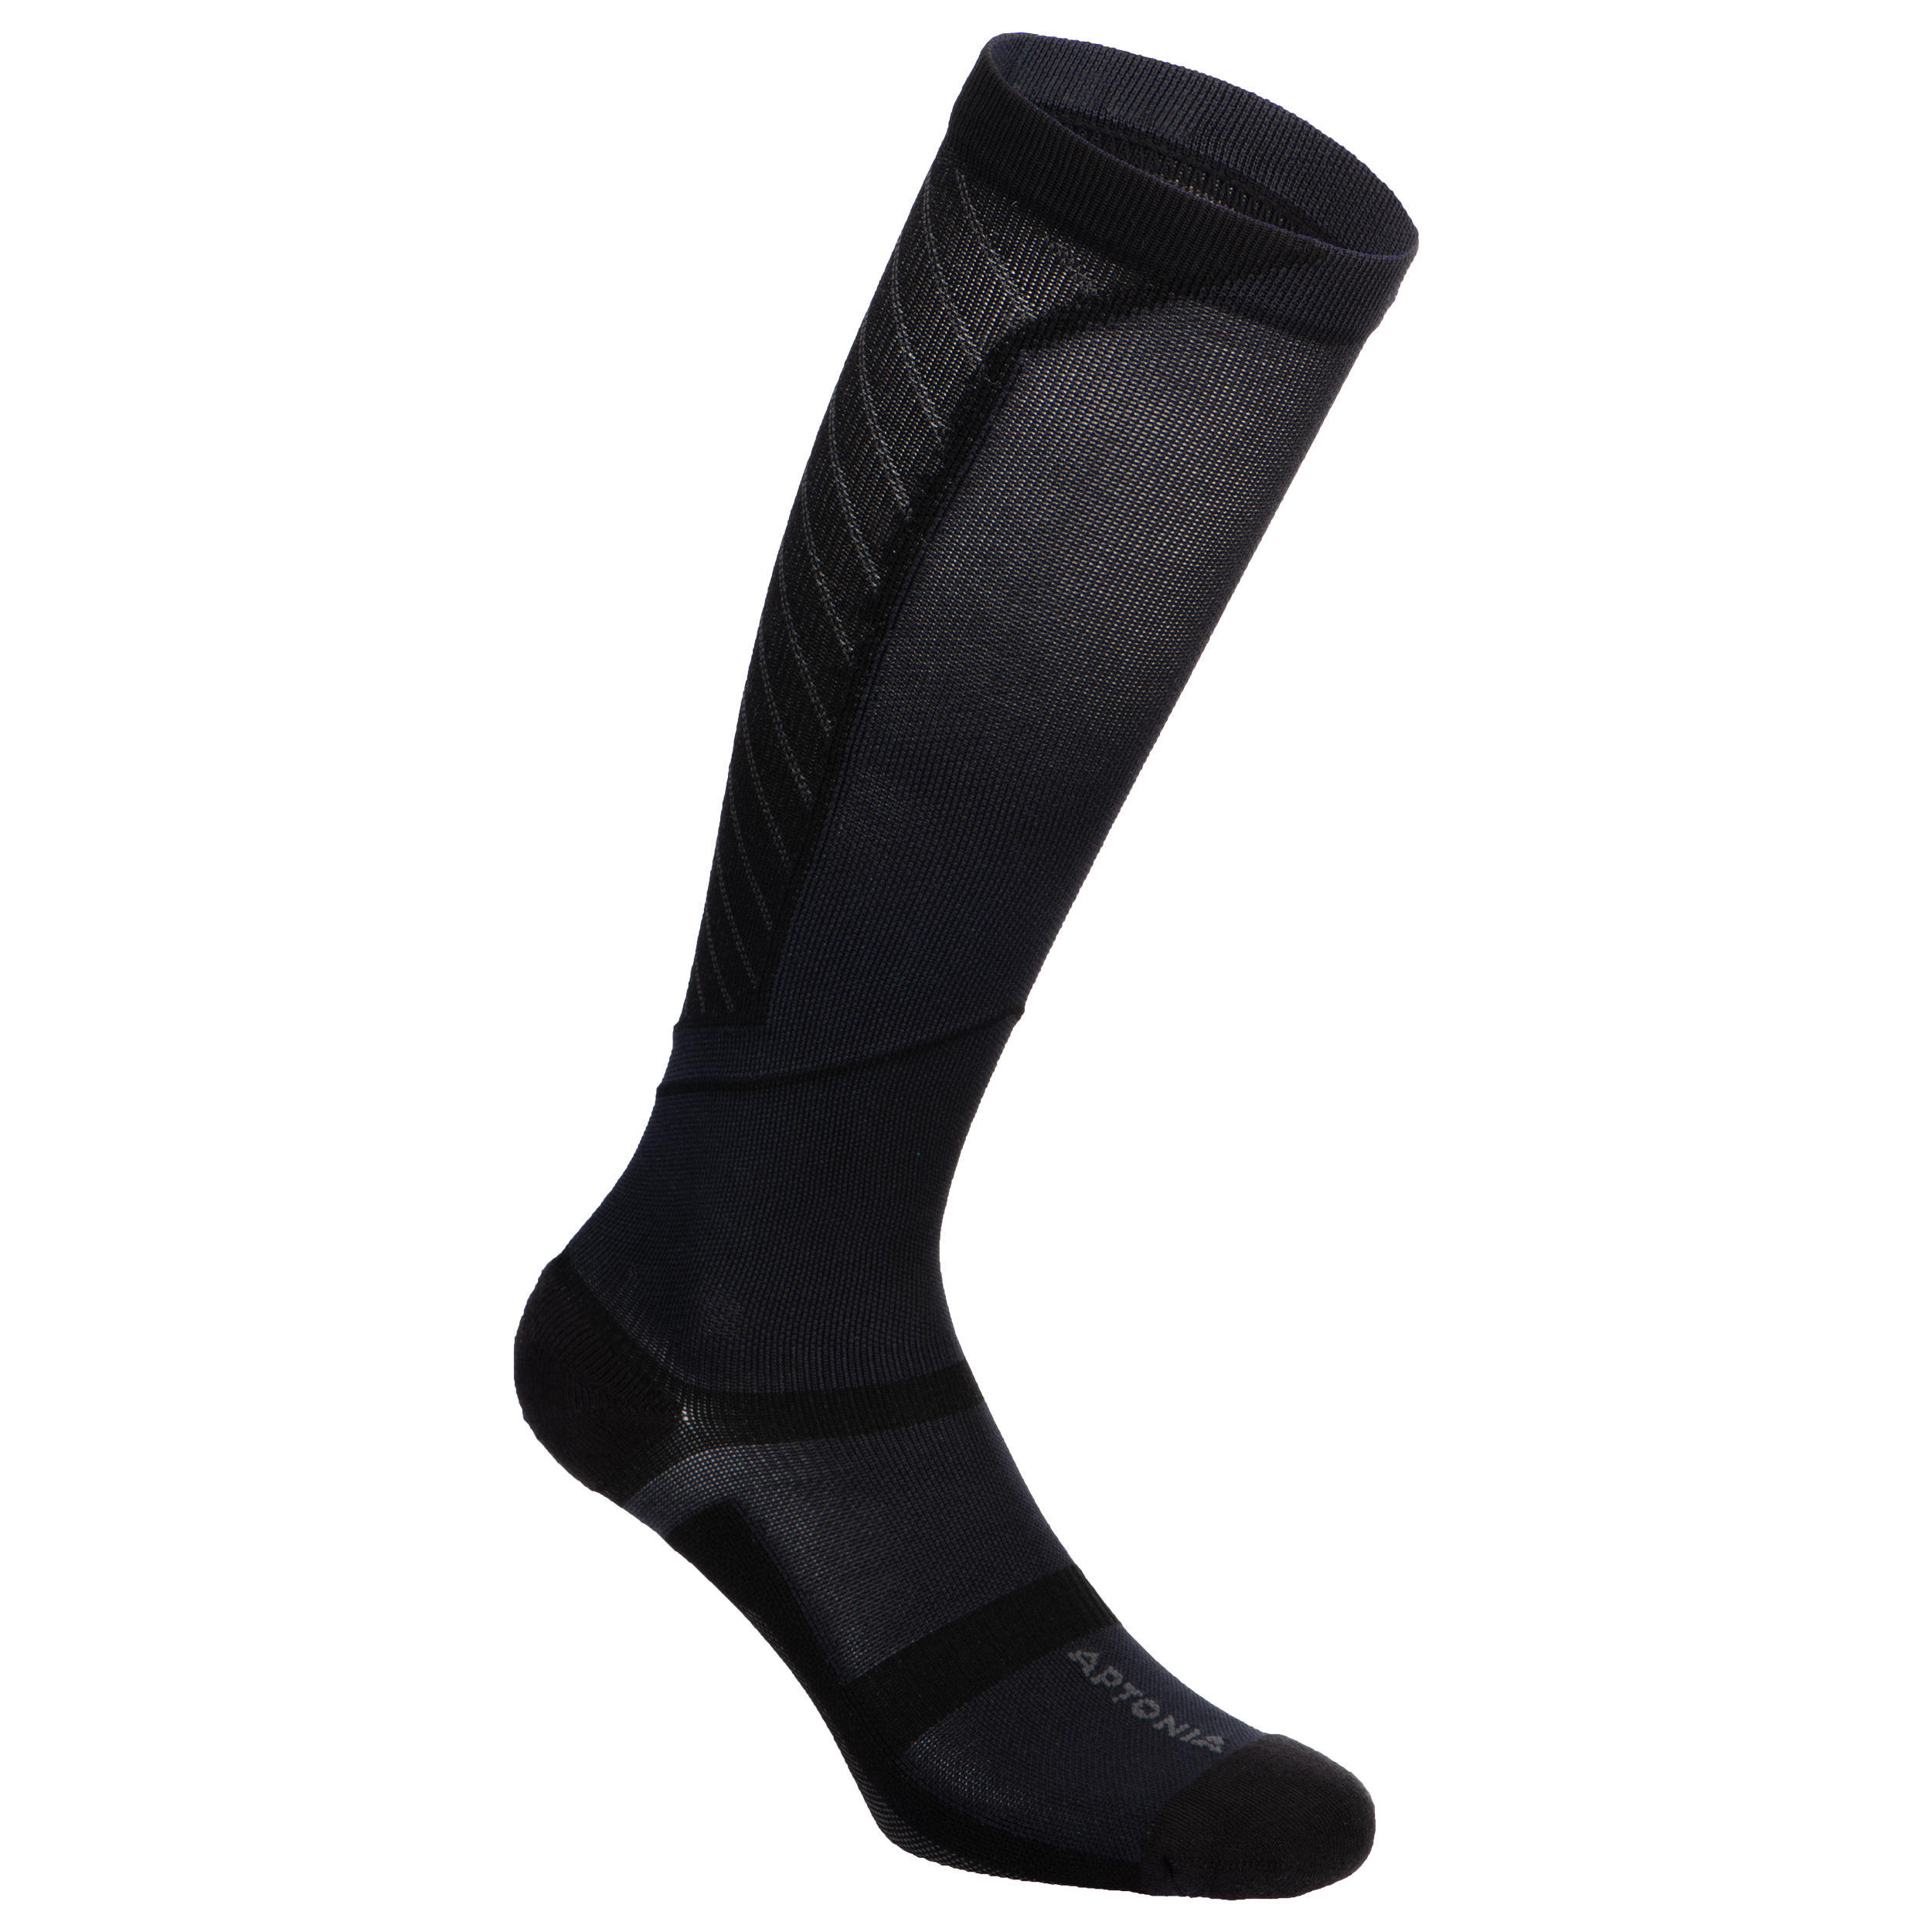 https://contents.mediadecathlon.com/p1638131/k$d294443e7d352f5c86ef315d1822c857/recovery-compression-sock-black.jpg